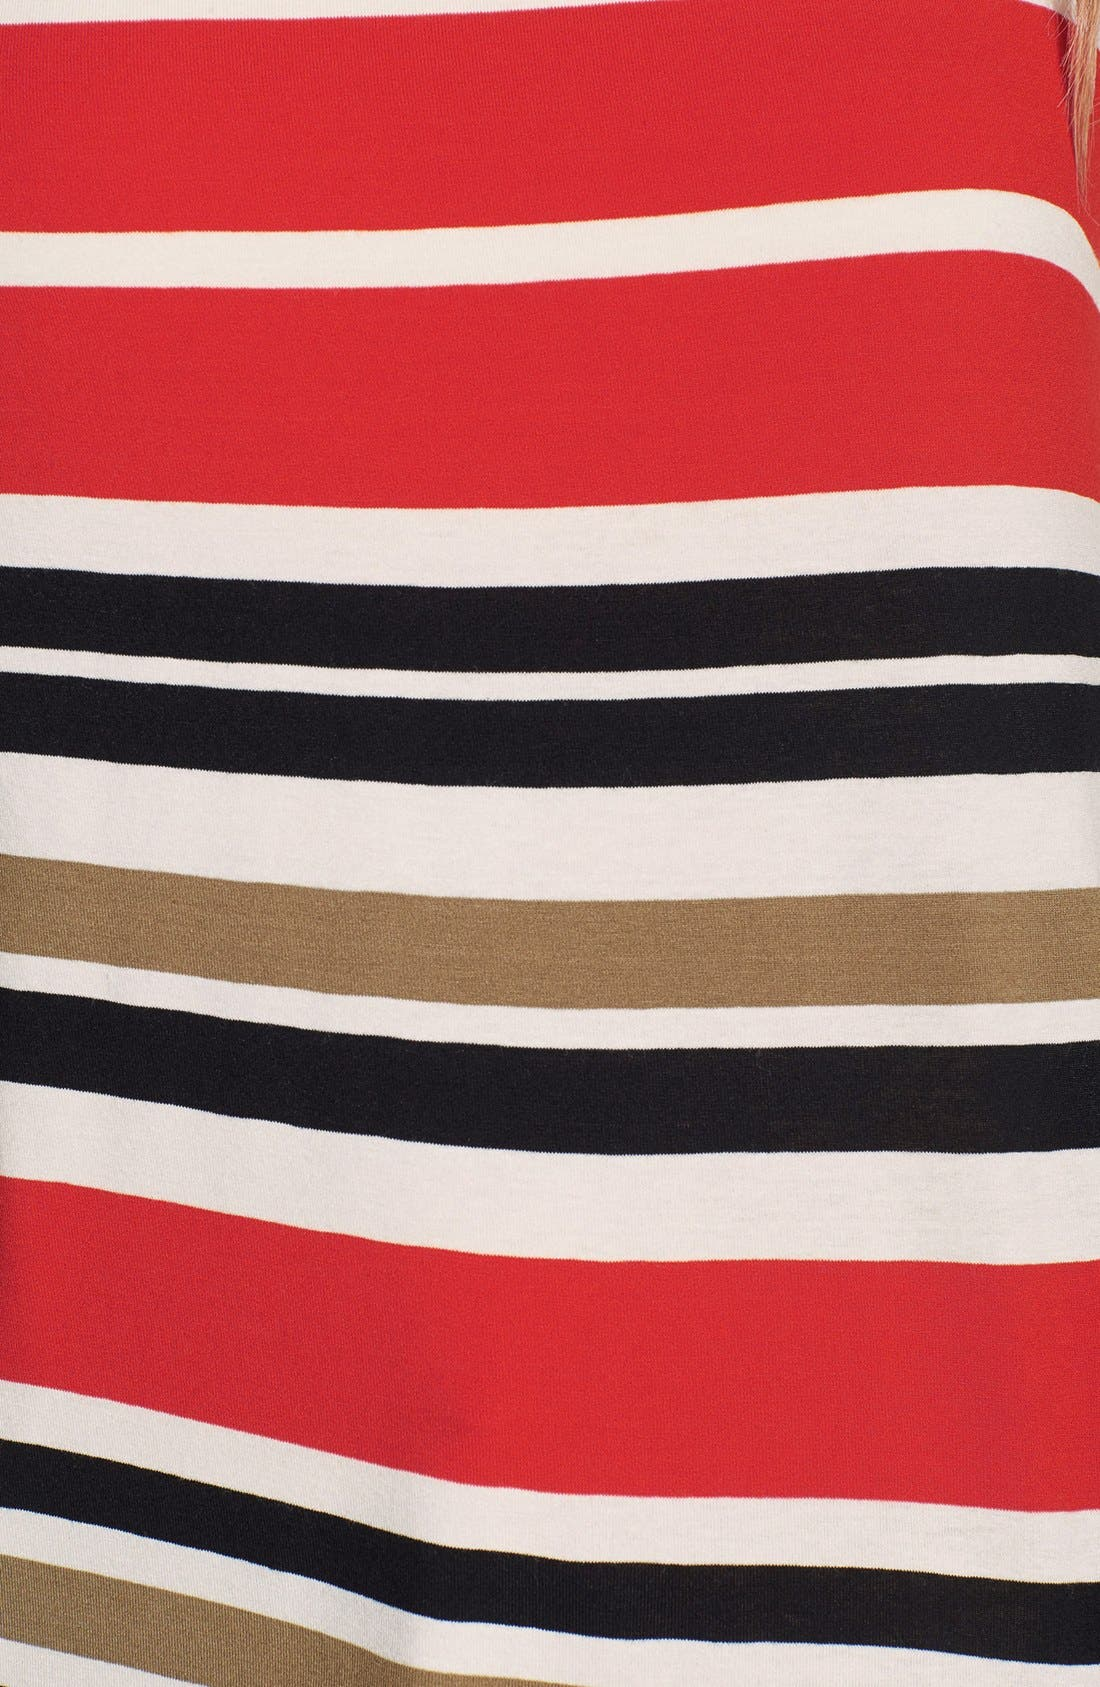 Alternate Image 3  - Vince Camuto 'Legacy Stripe' Mixed Media Blocked Top